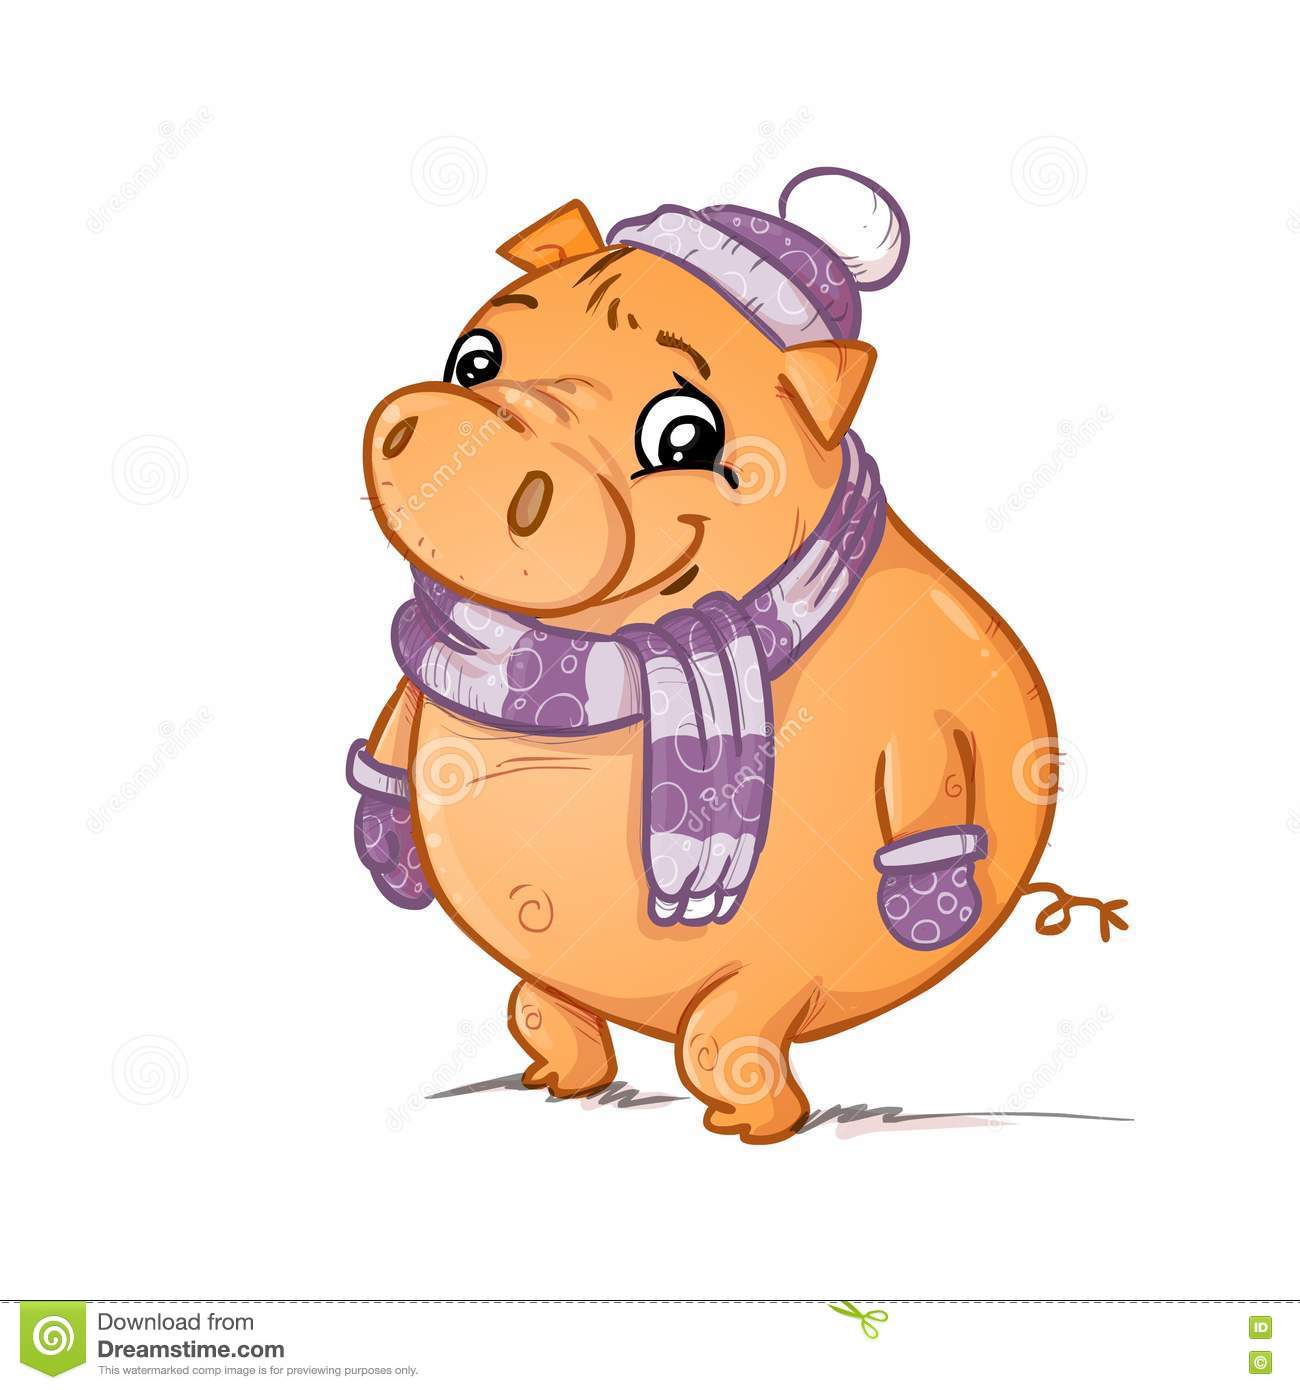 A pig with scarf gloves and hat